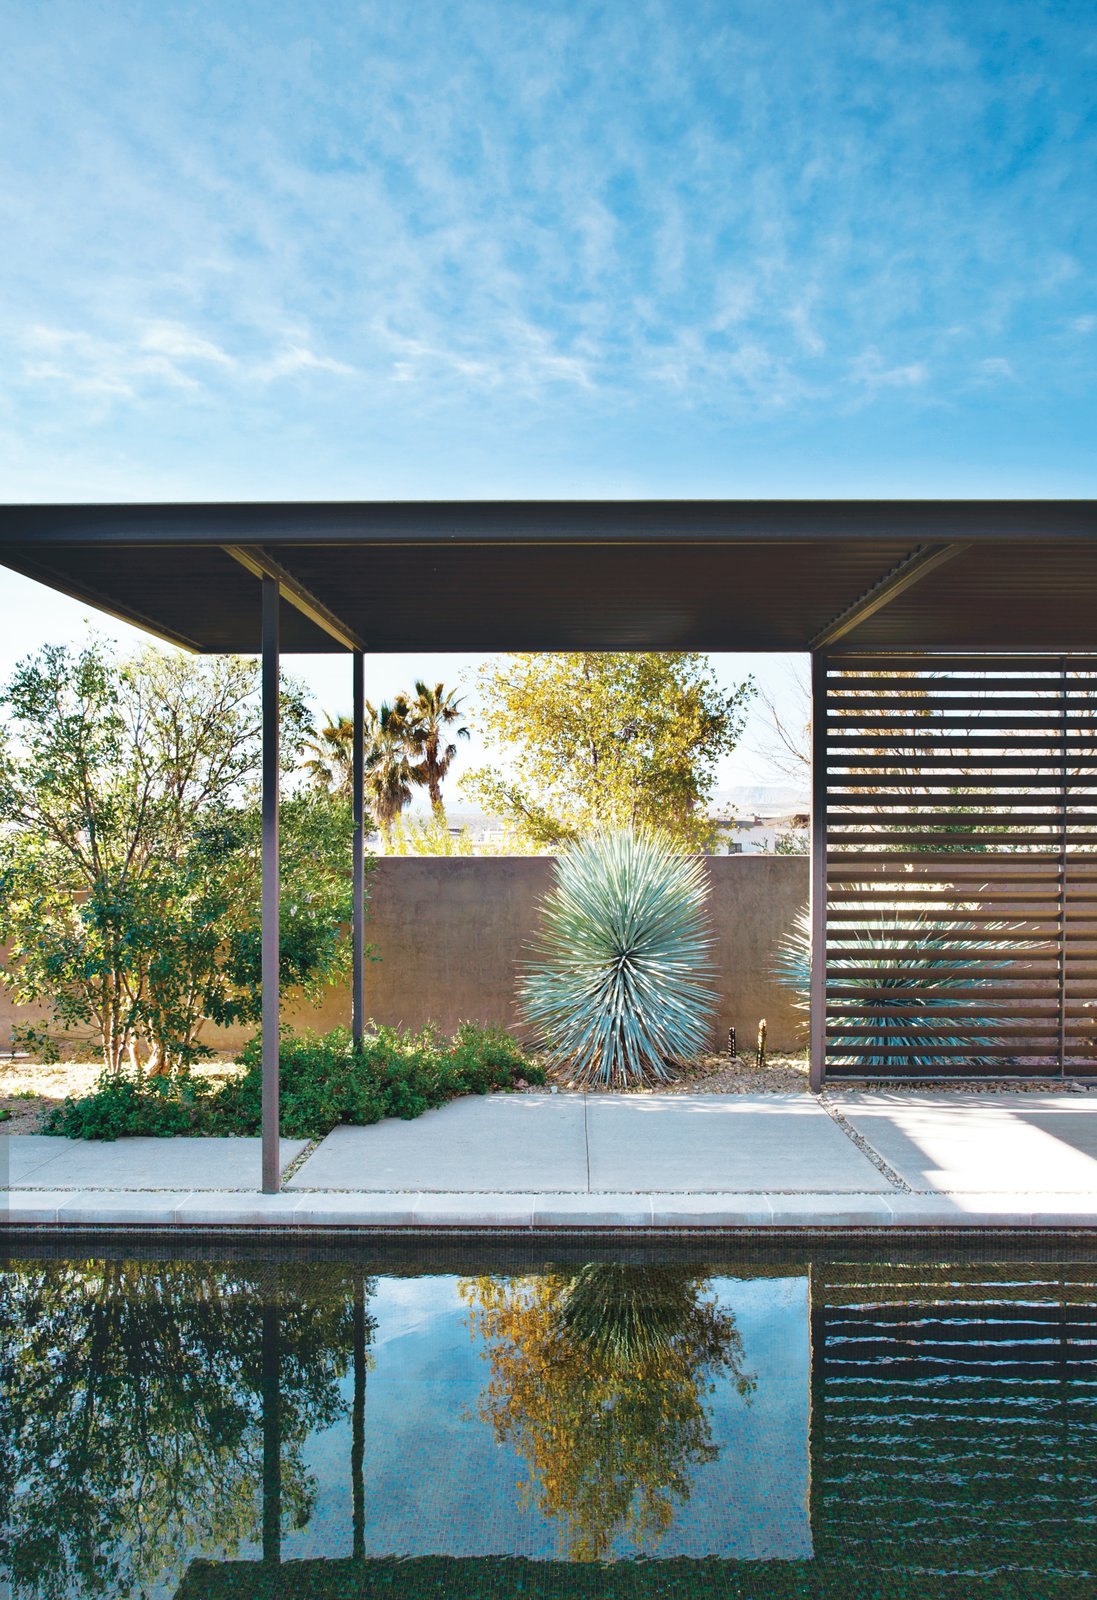 Las Vegas modern desert prefab backyard pool with concrete patio and metal awning accents